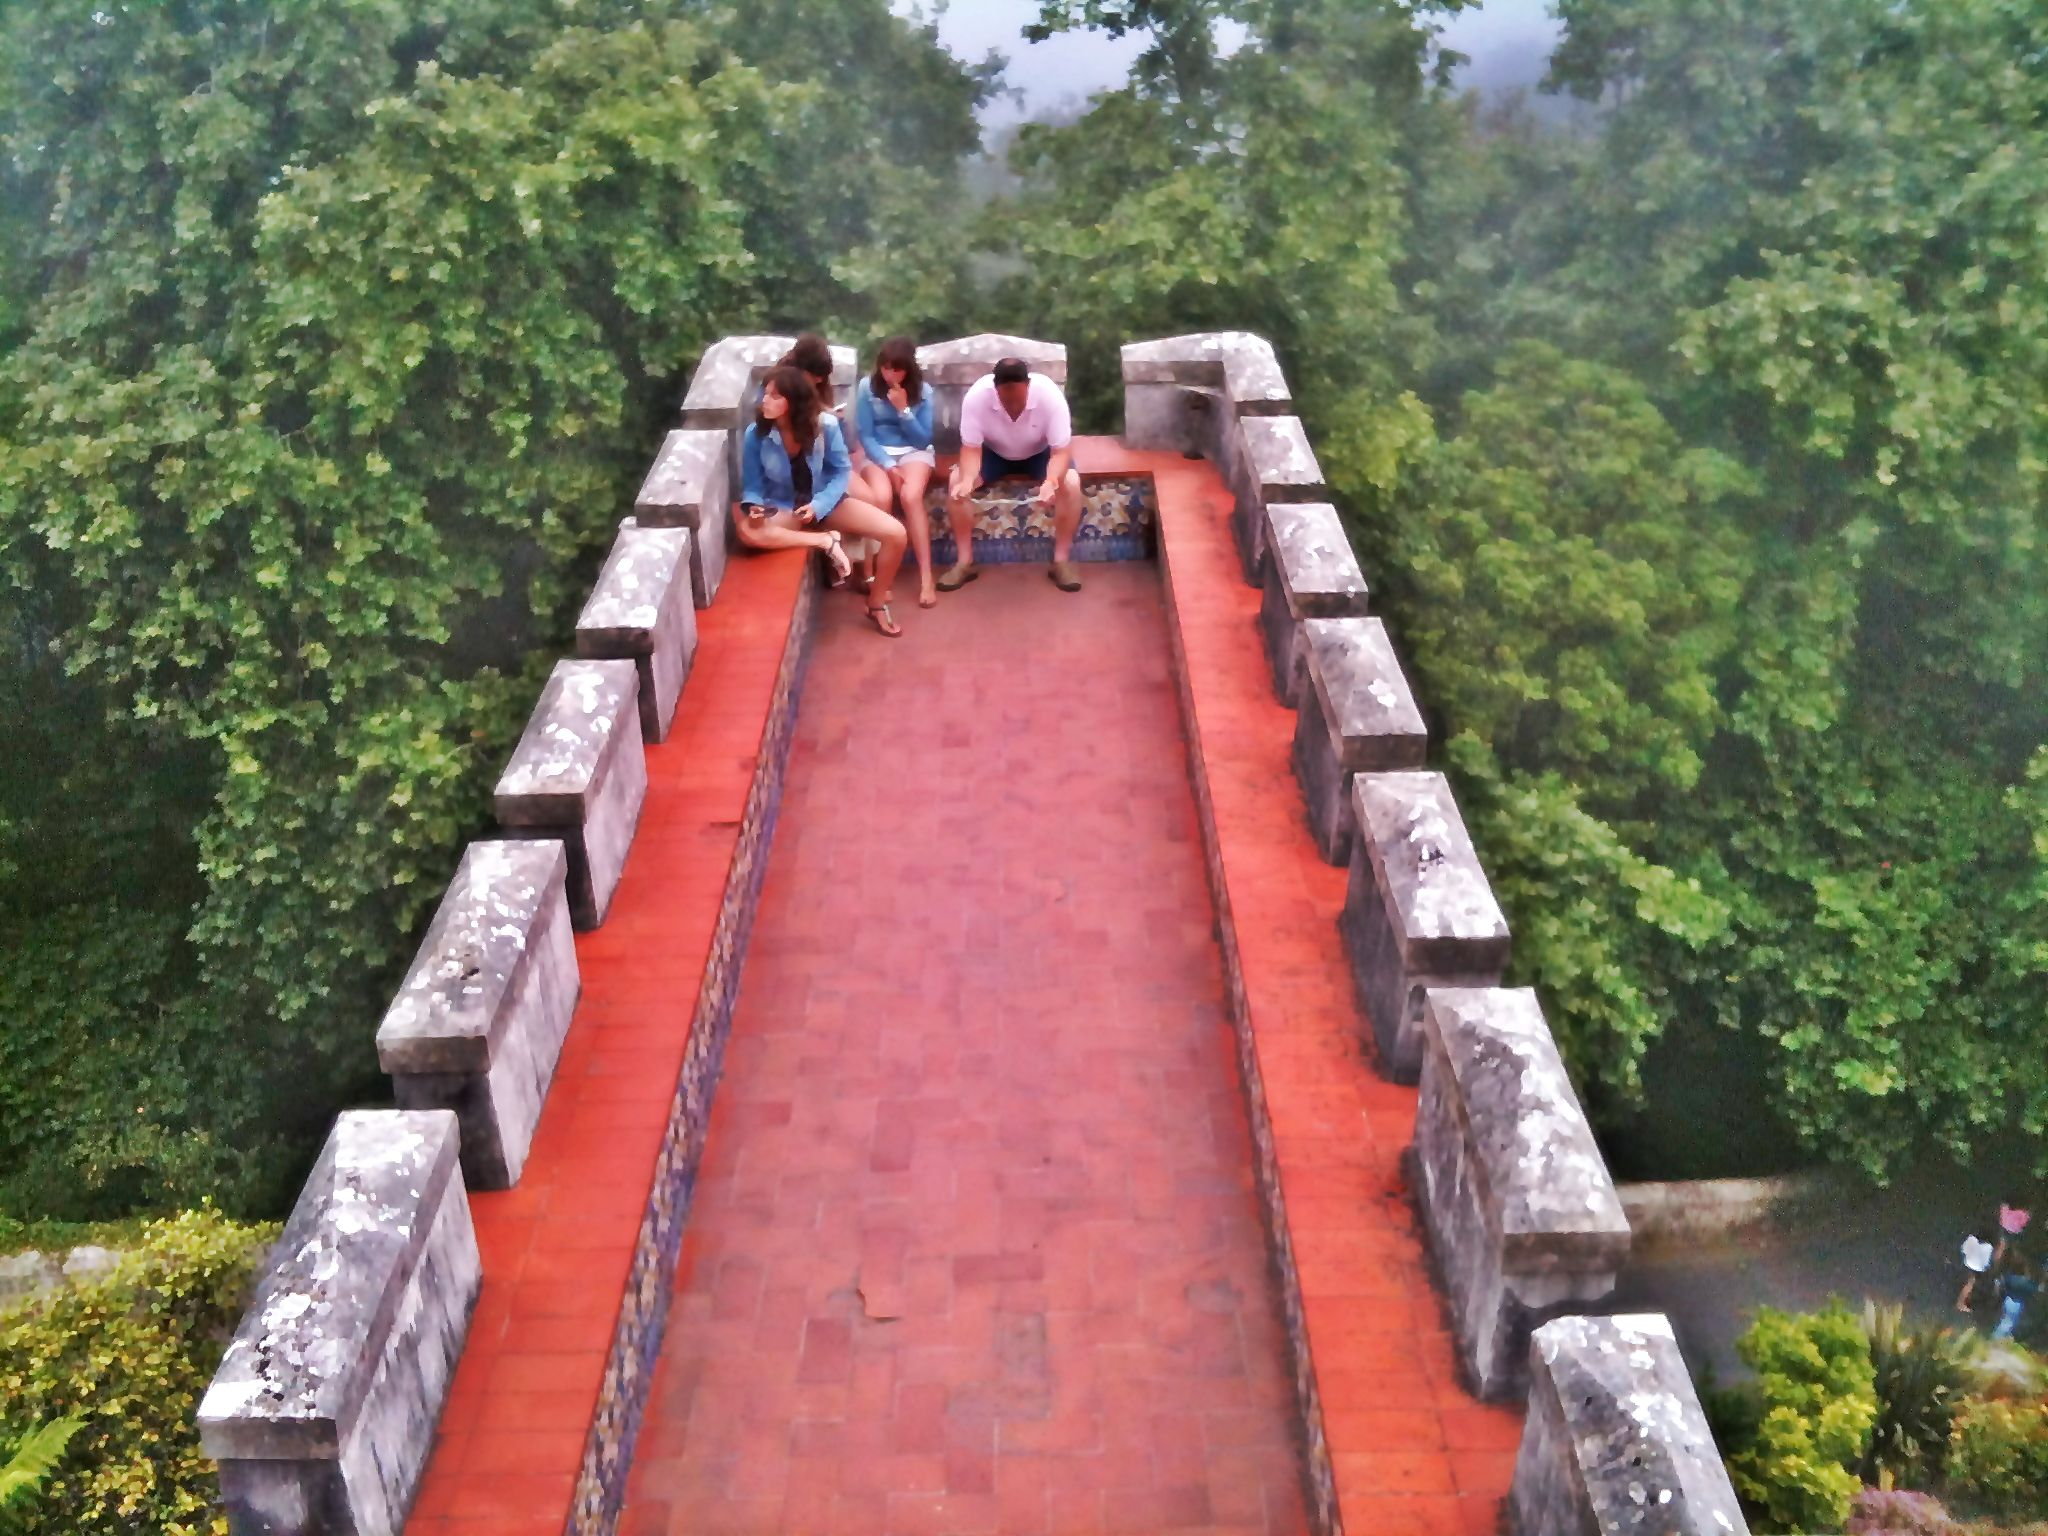 PENA PALACE TERRACE, COLORFUL, REMOTE, AMIDST FOREST AND SKY